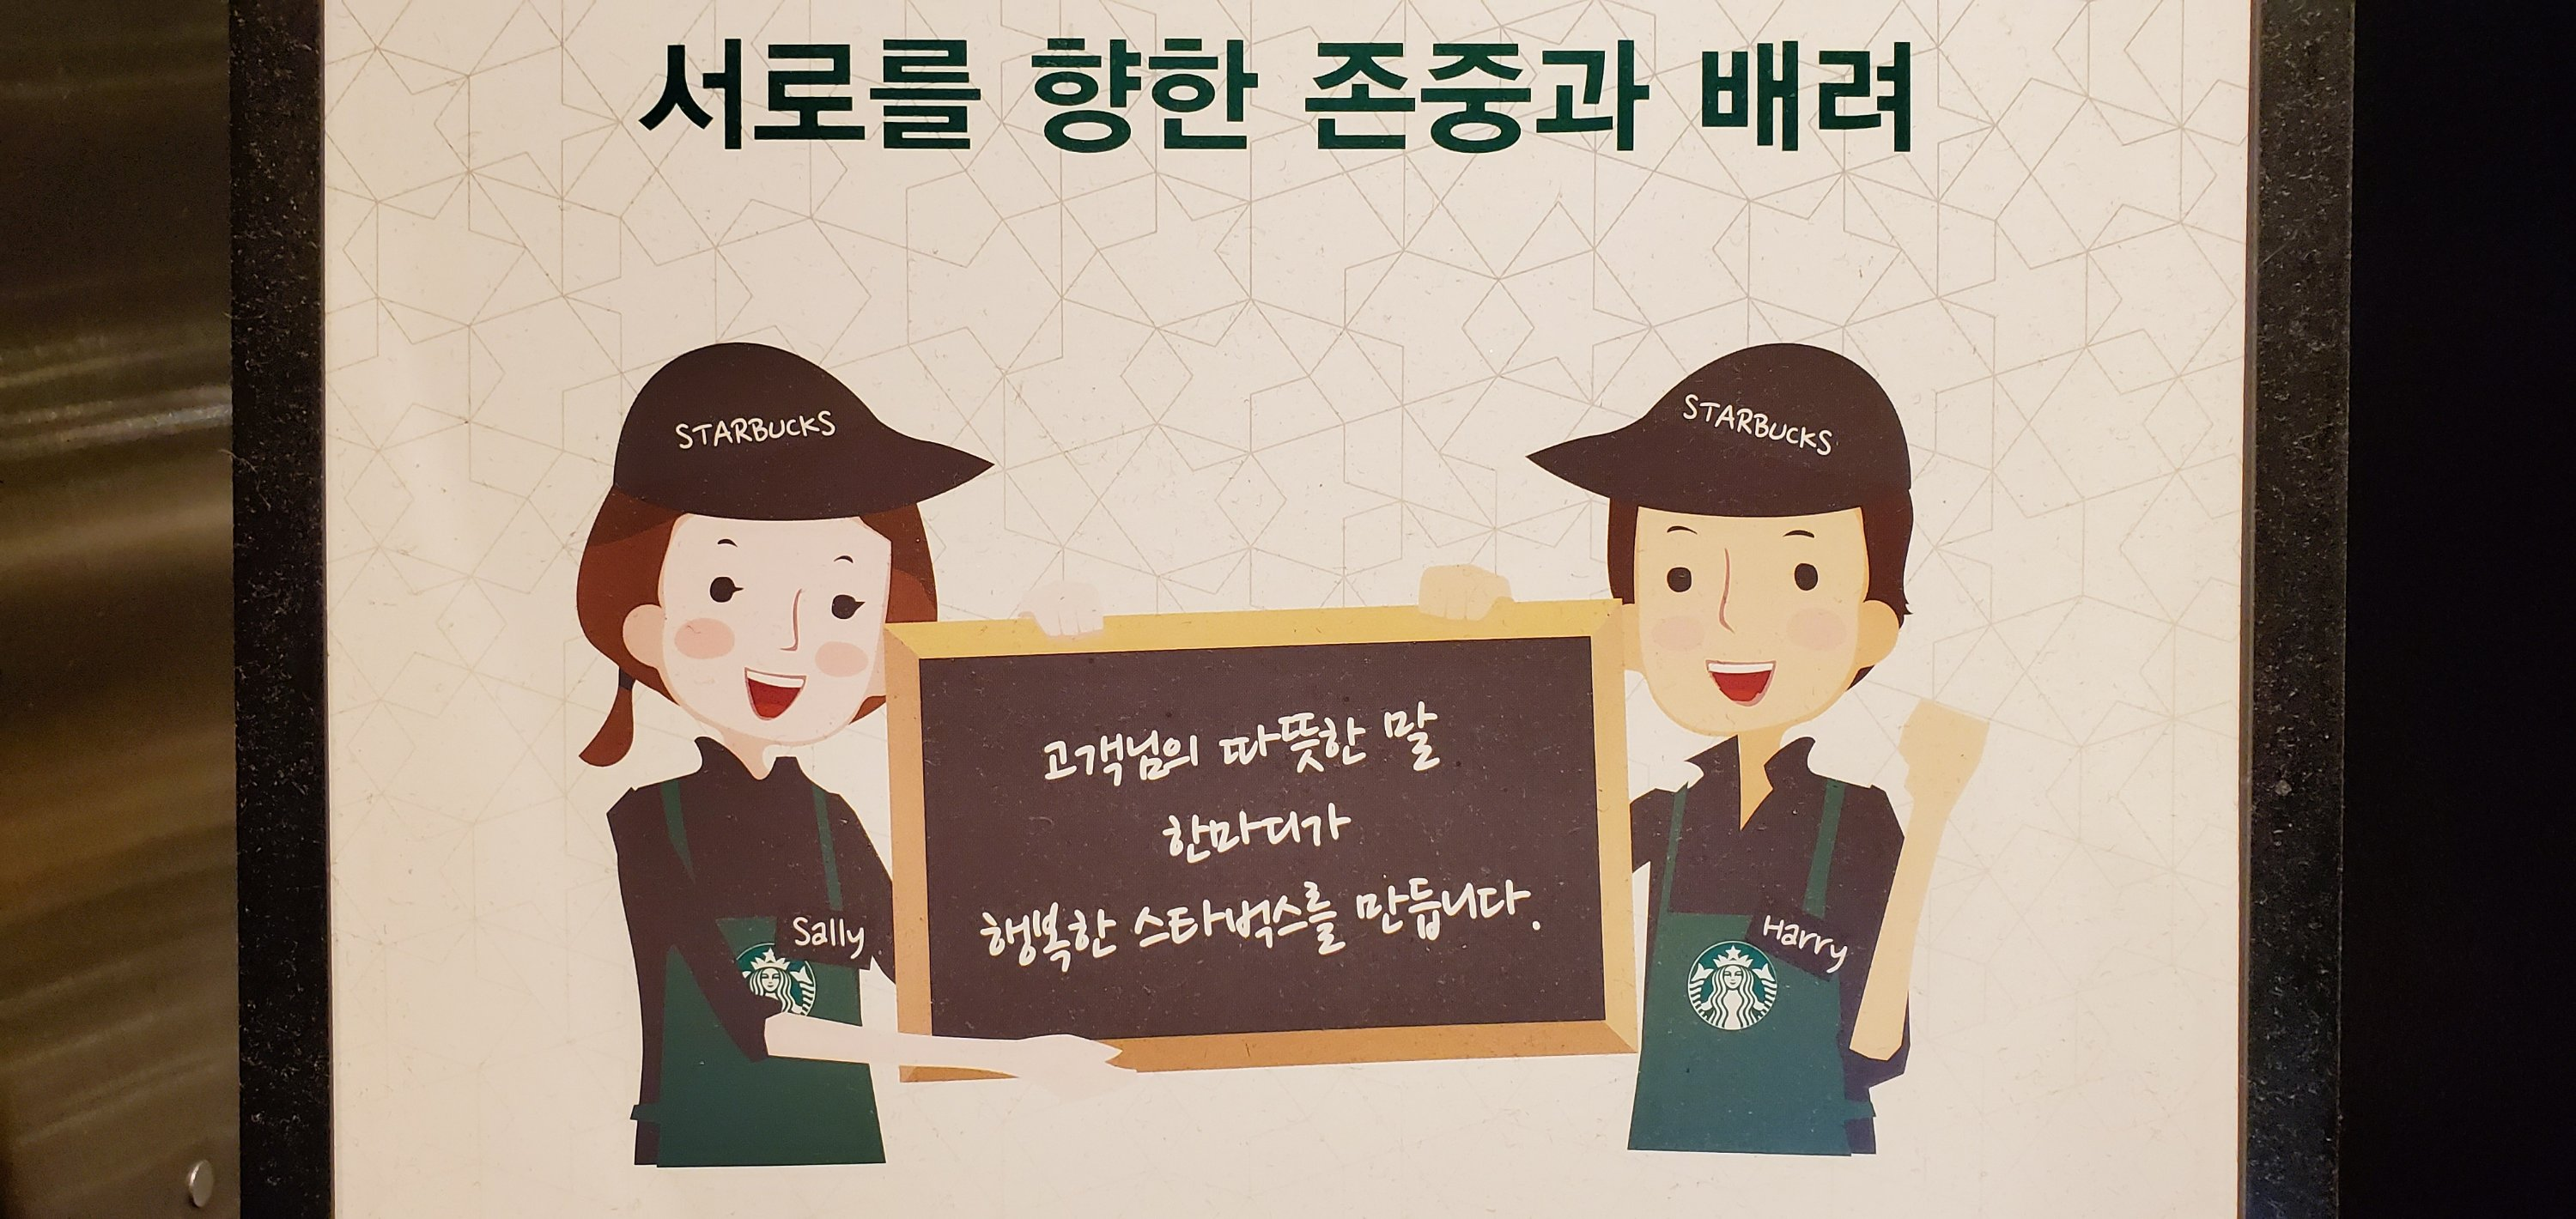 Starbucks sign in a store in Seoul, Korea